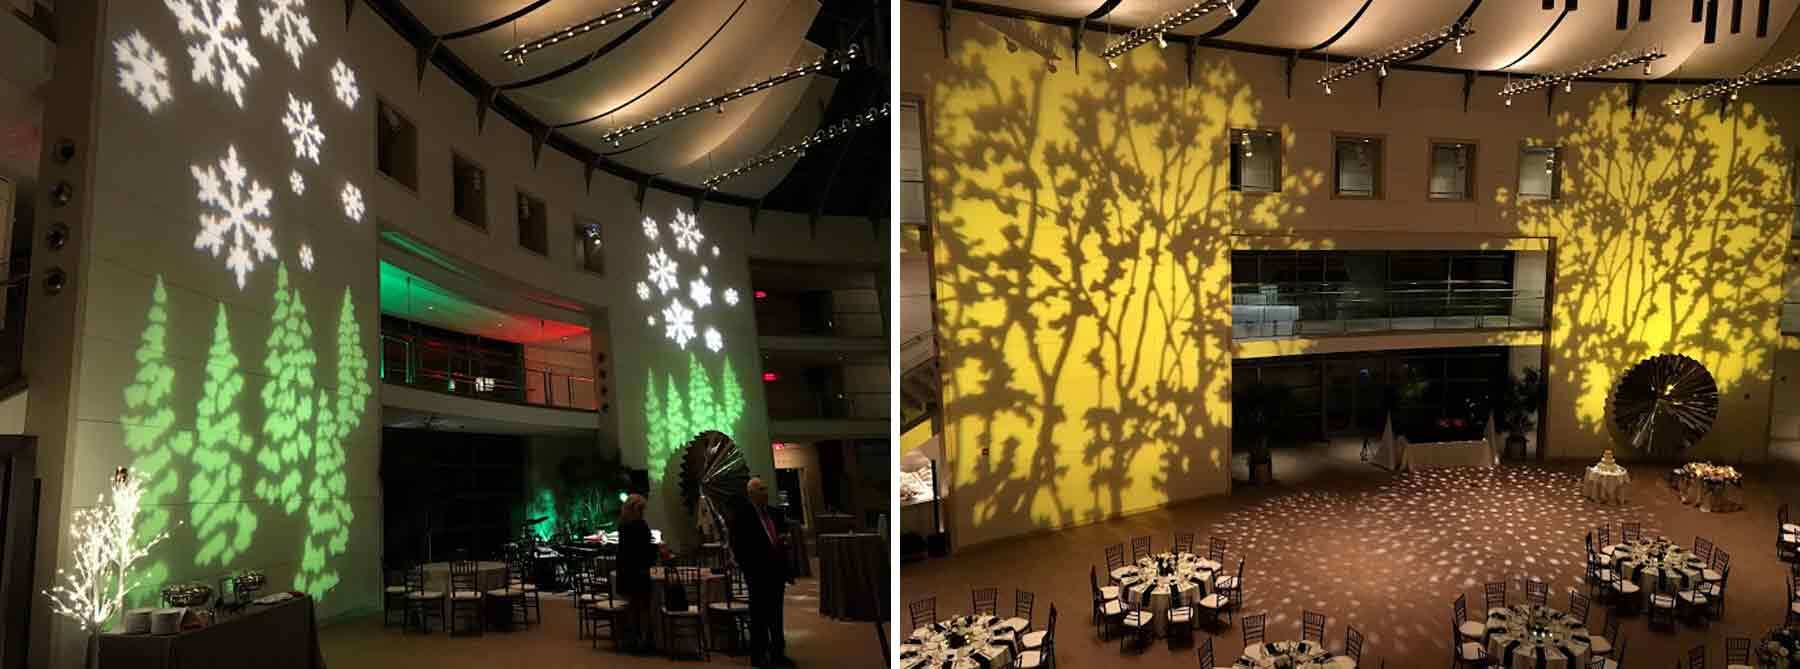 Henry Rutkowski creates the theatrical lighting for PEM events setting the mood for galas, weddings, performances, and holidays. Photos by Henry Rutkowski